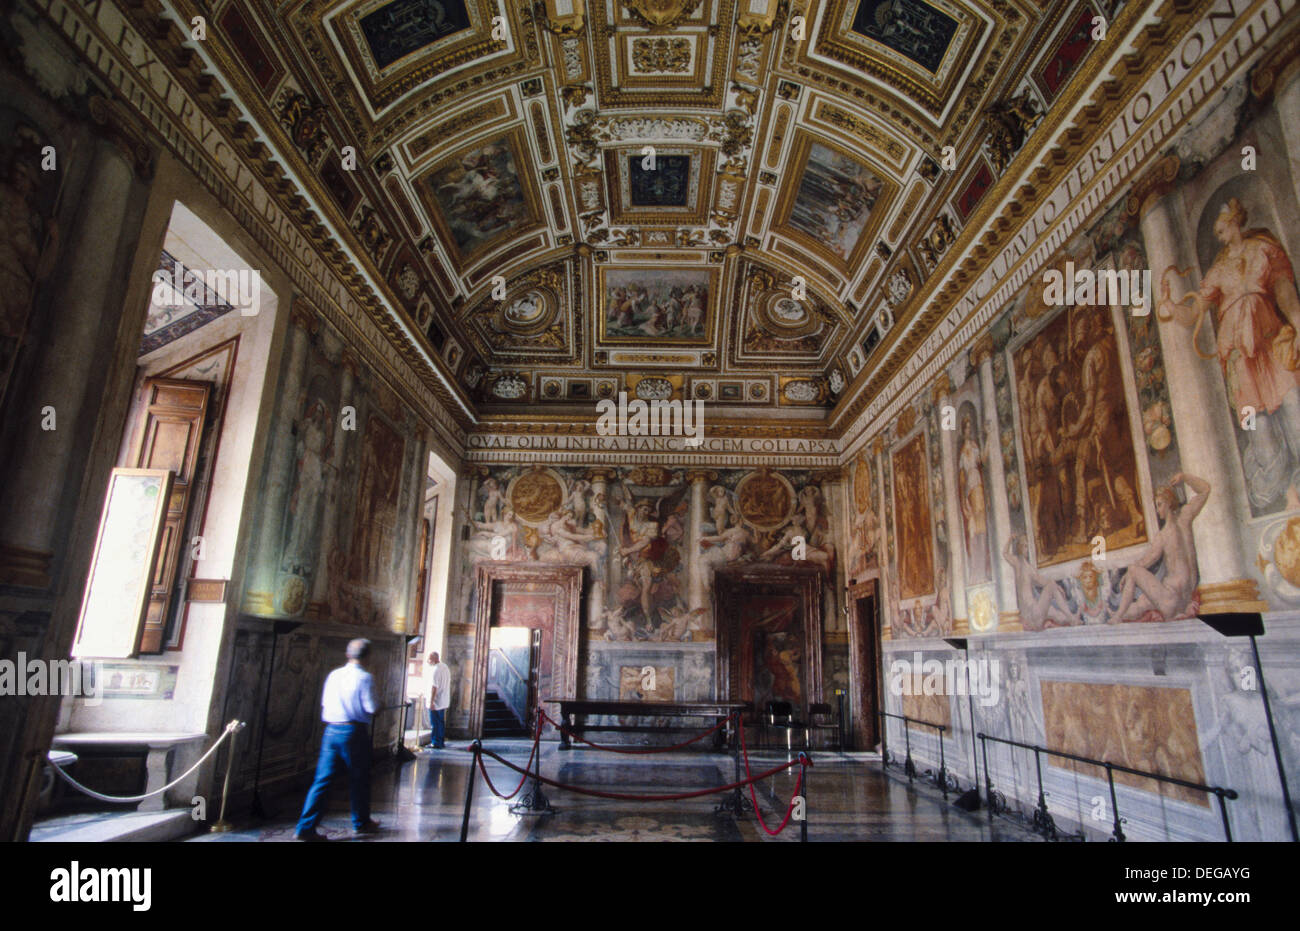 sala paolina with frescoes by perin de vega and pellegrino rooms in castles in the middle ages rooms in castleford